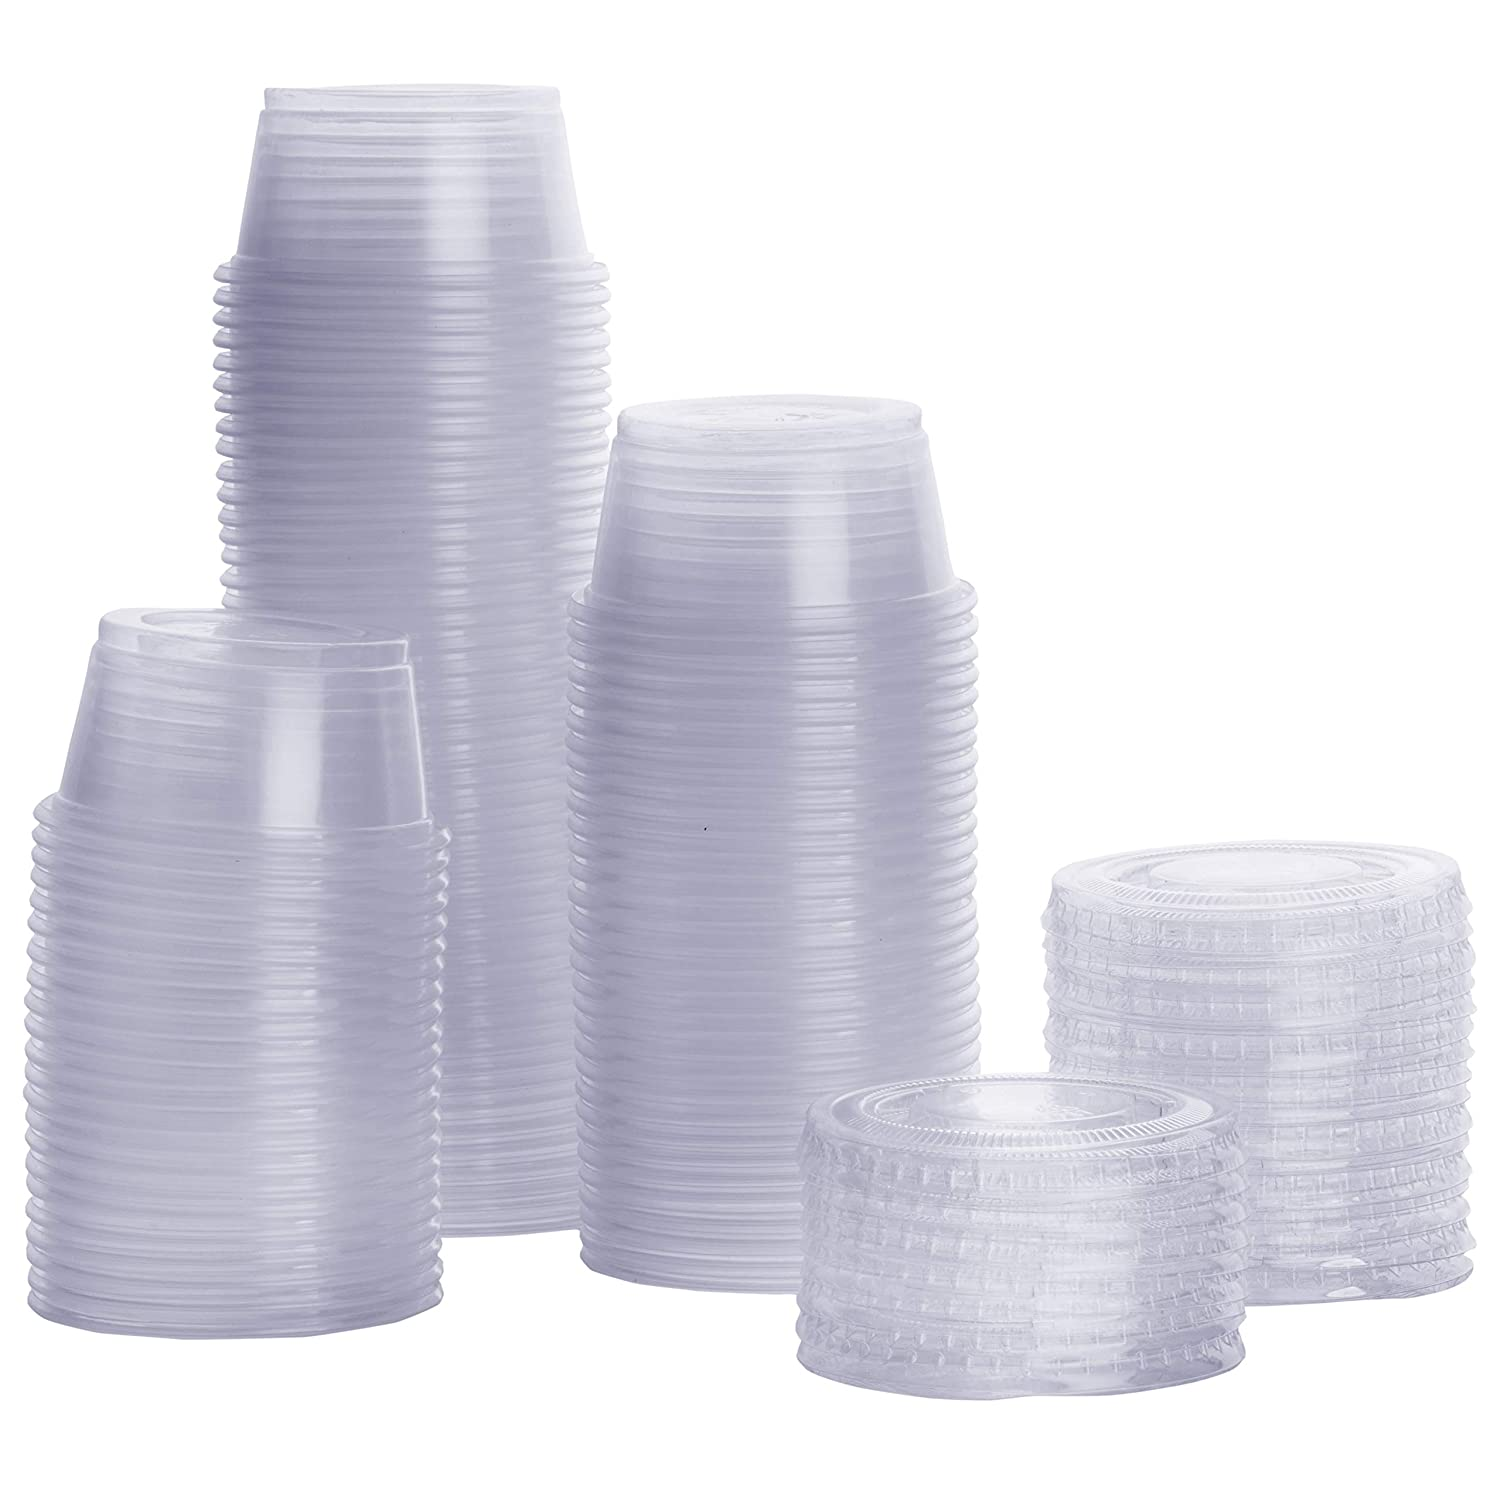 100 Sets 2 oz. Plastic Portion Cups With Lids Souffle Cups Jello Shot Cups